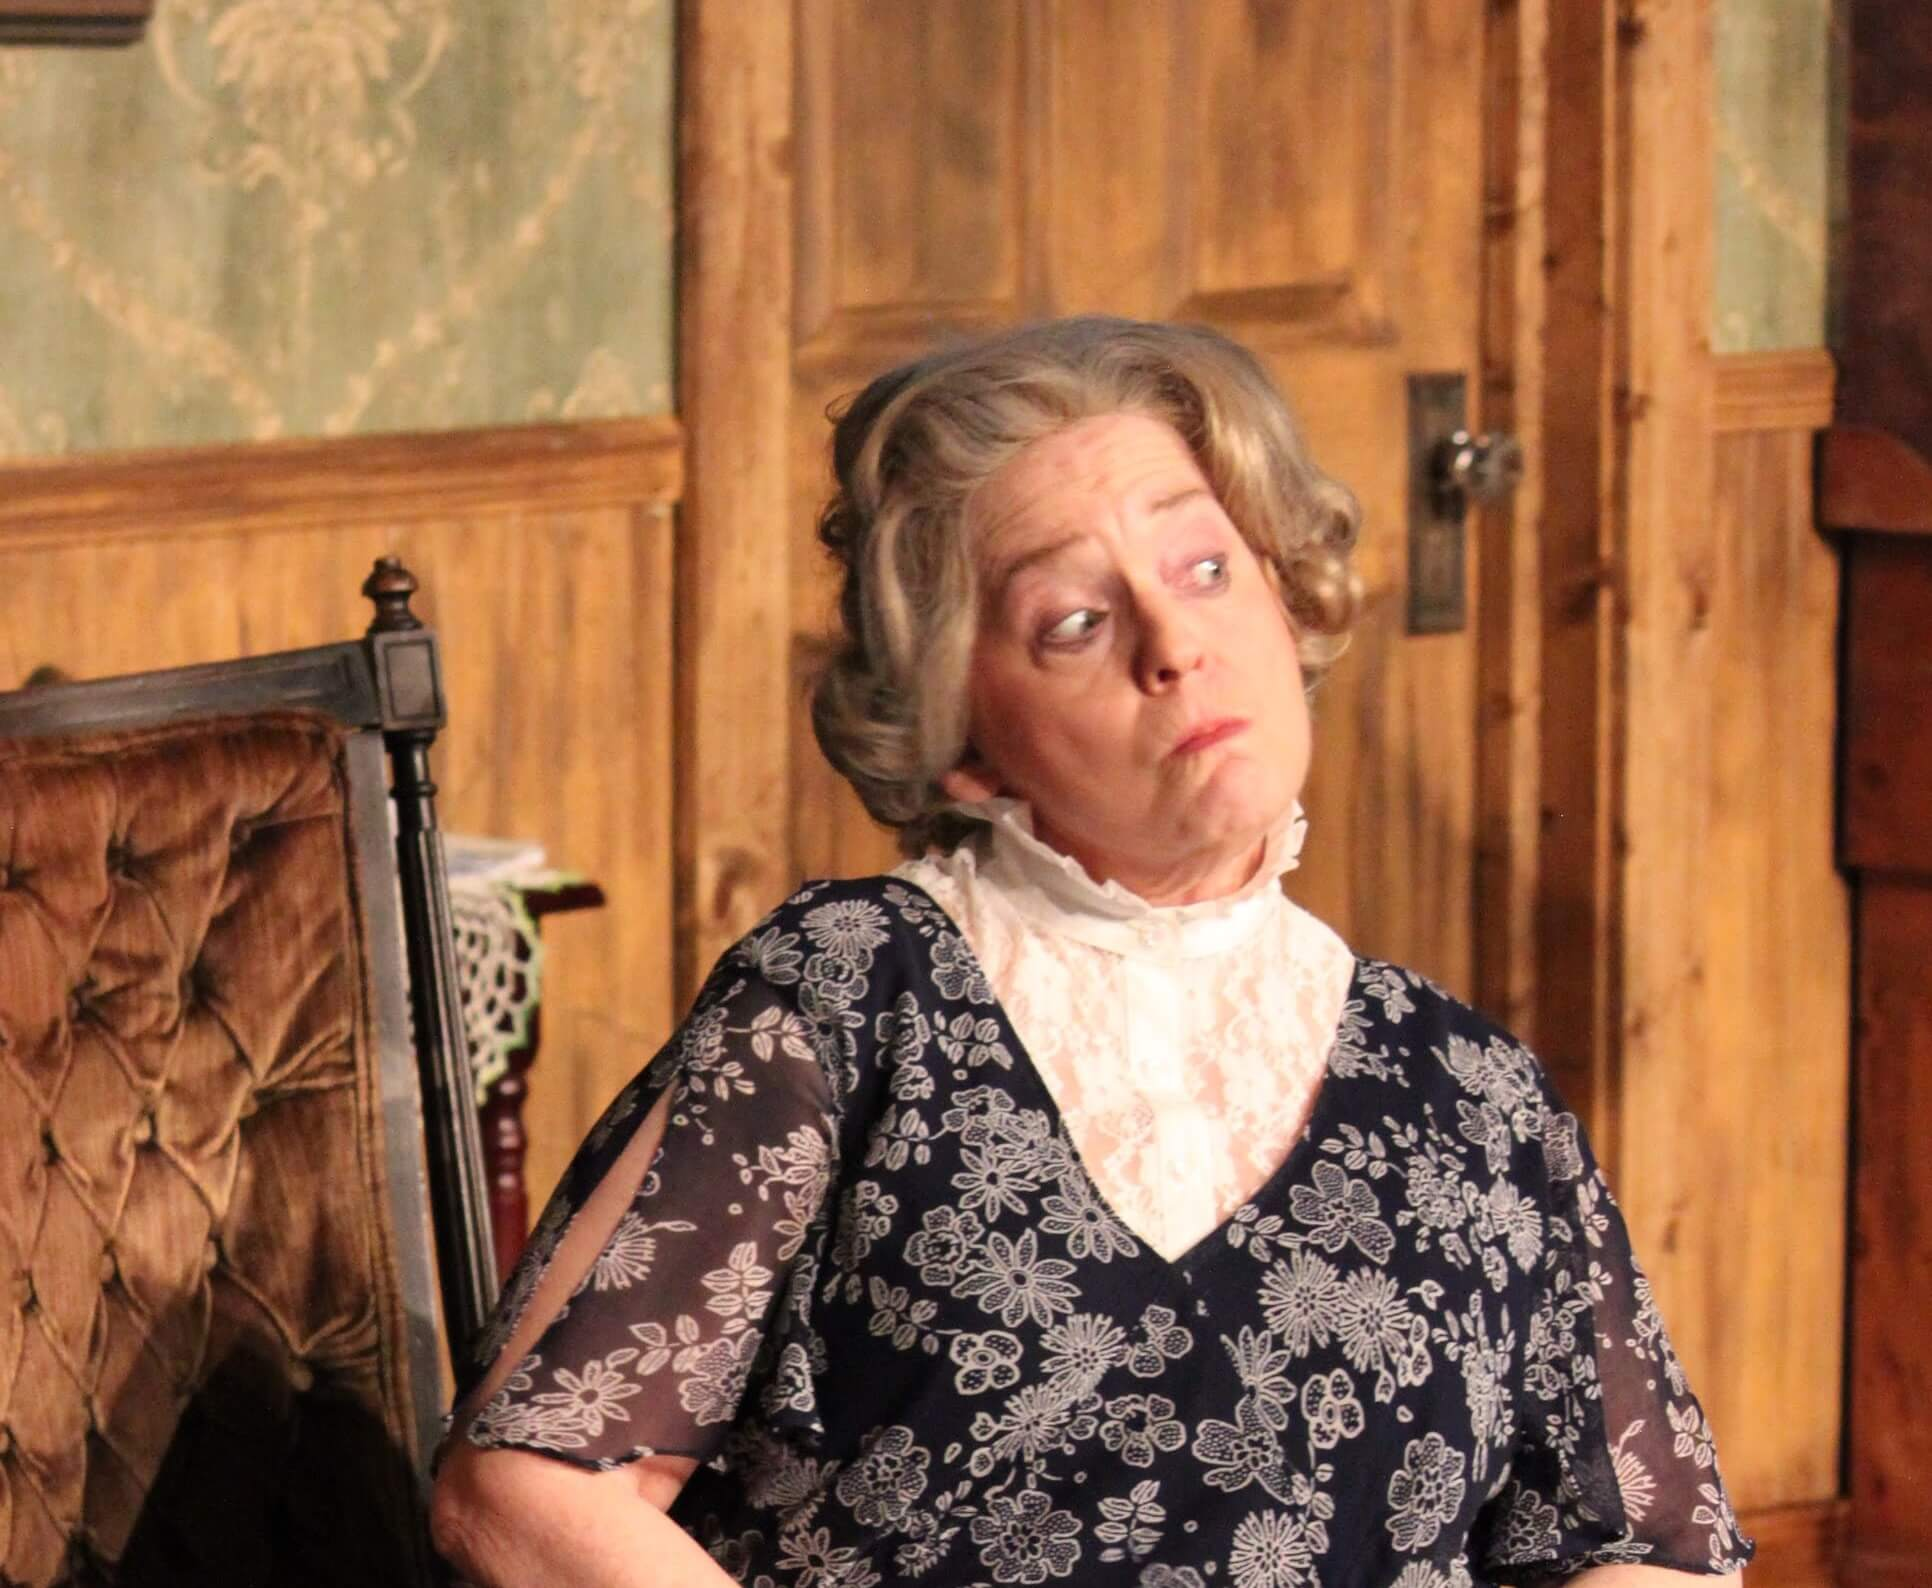 GAYLE GRIER AS AUNT ABBY